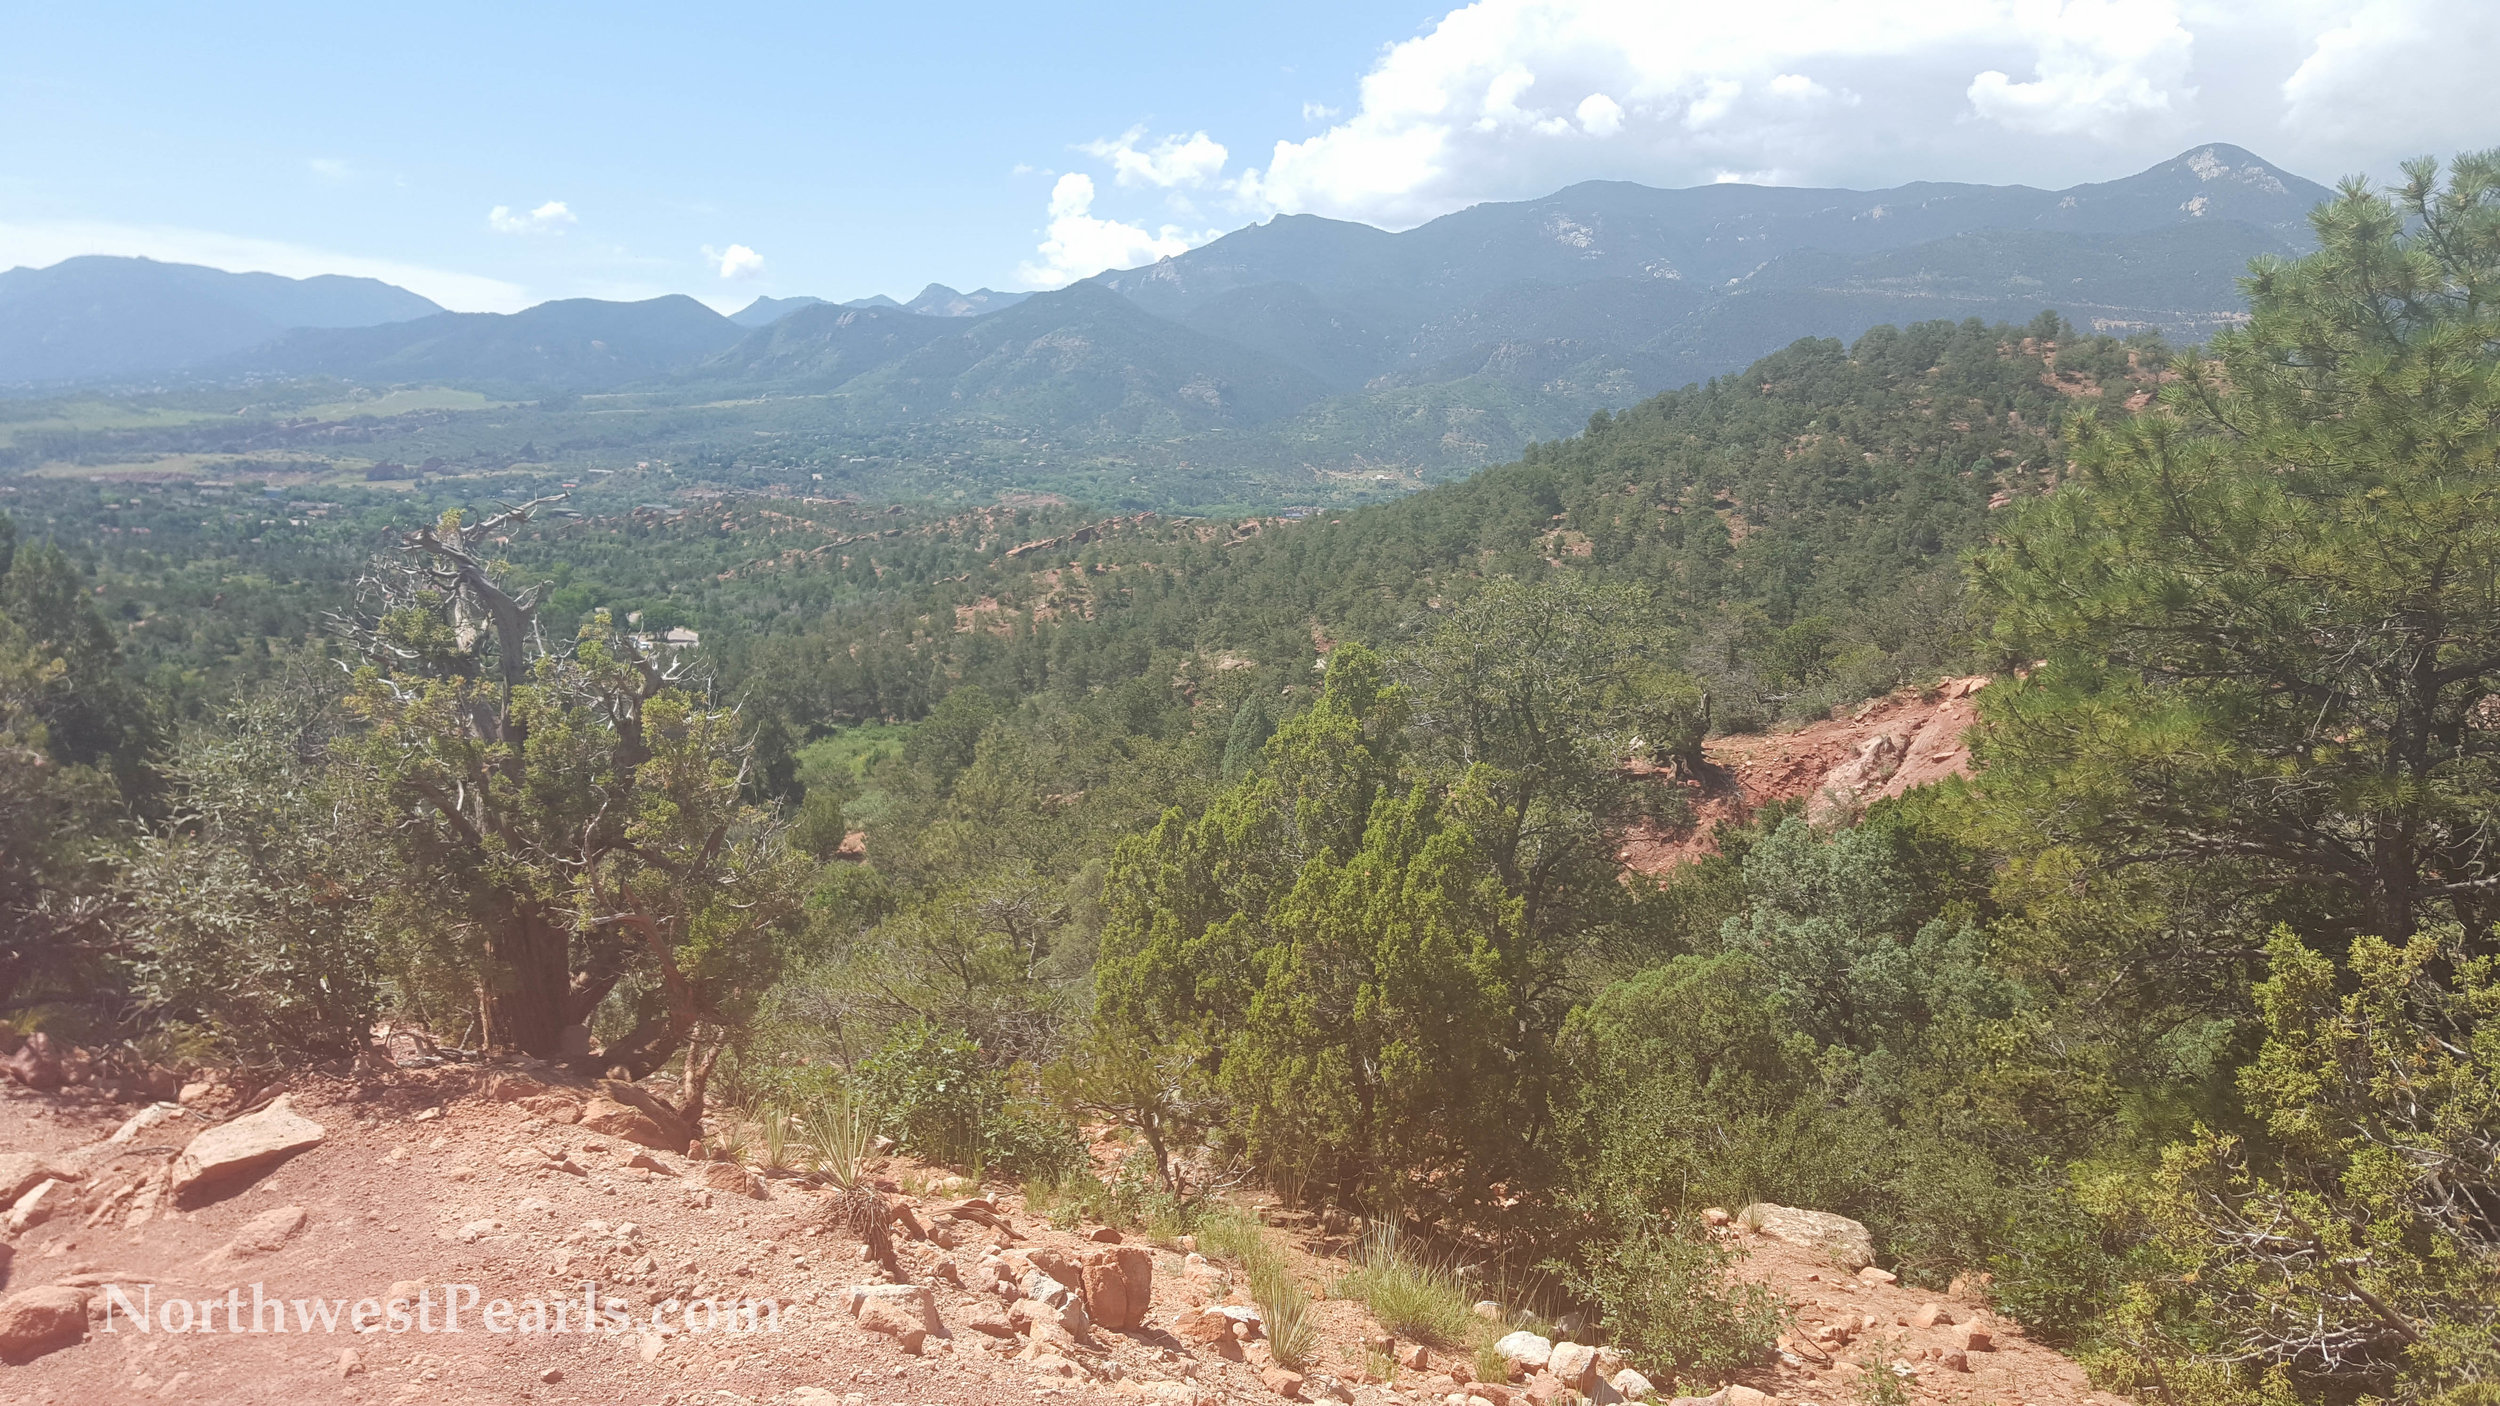 Northwest Pearls: Bachelorette Hike at Garden of the Gods